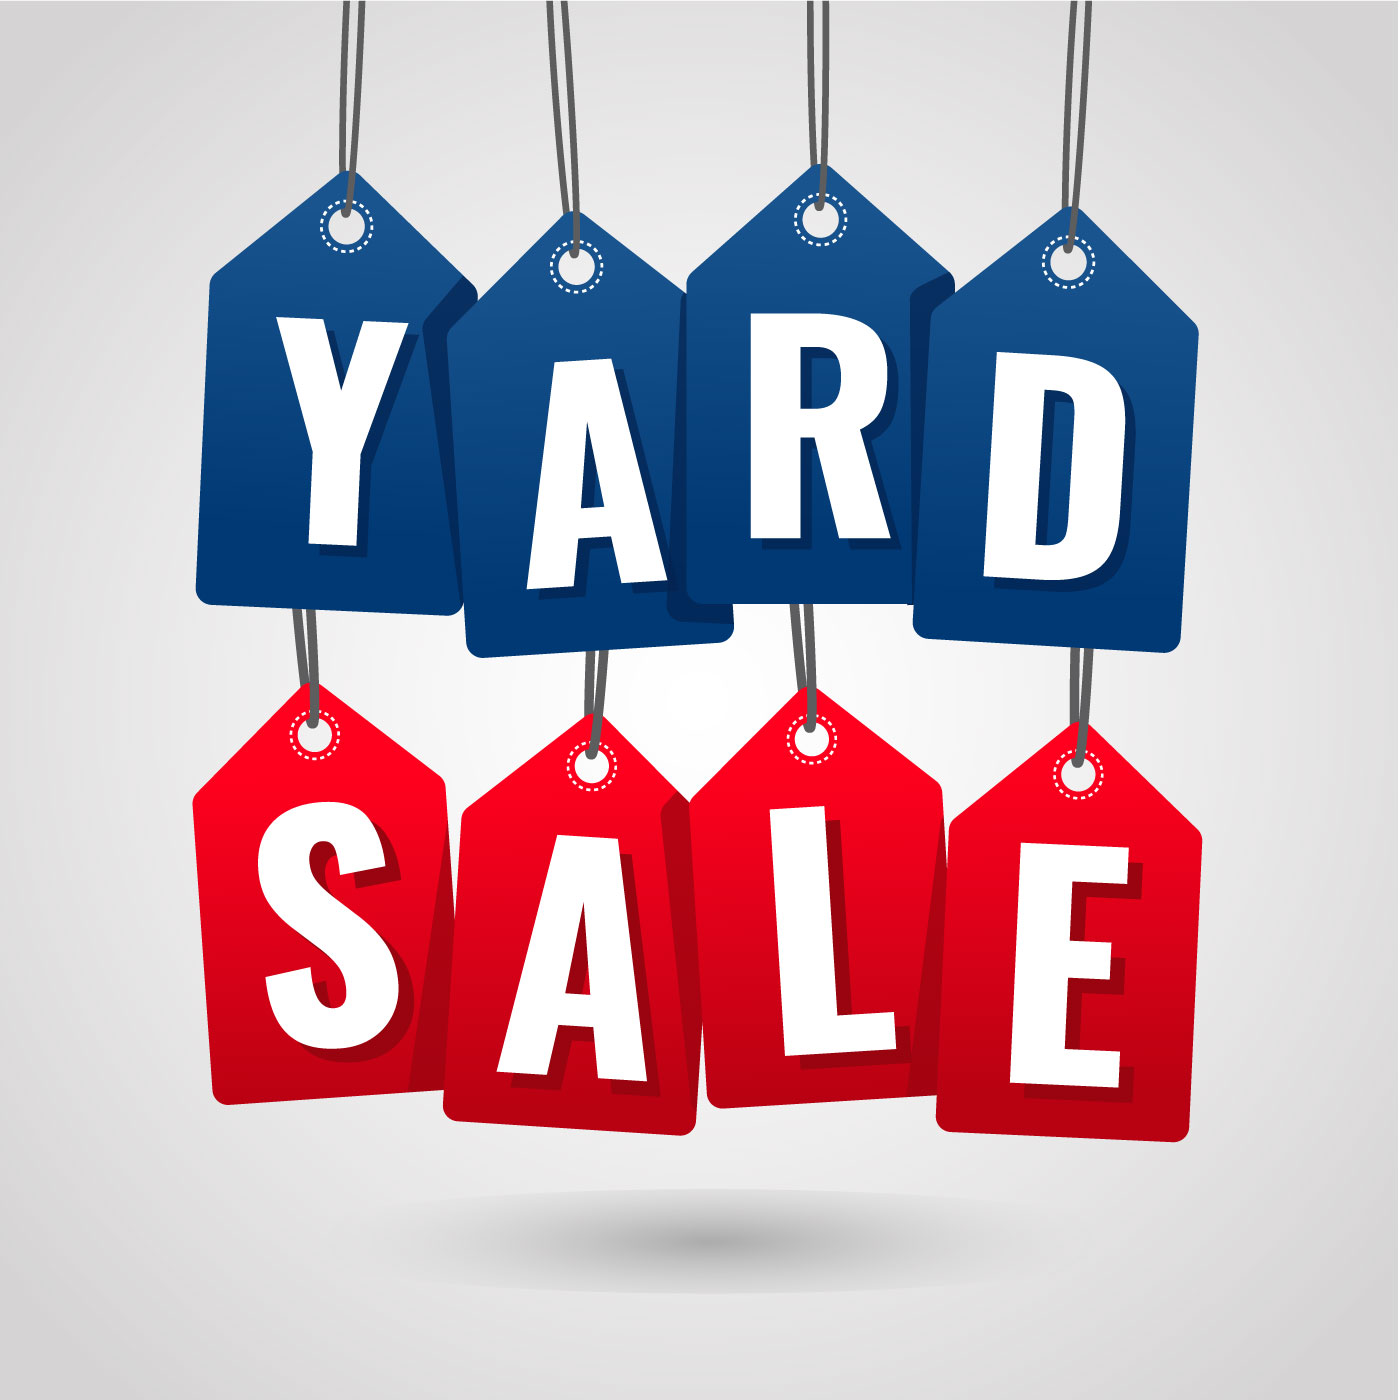 Garage Sale Price Stickers Yard Sale Tag Free Vector Art 18981 Free Downloads